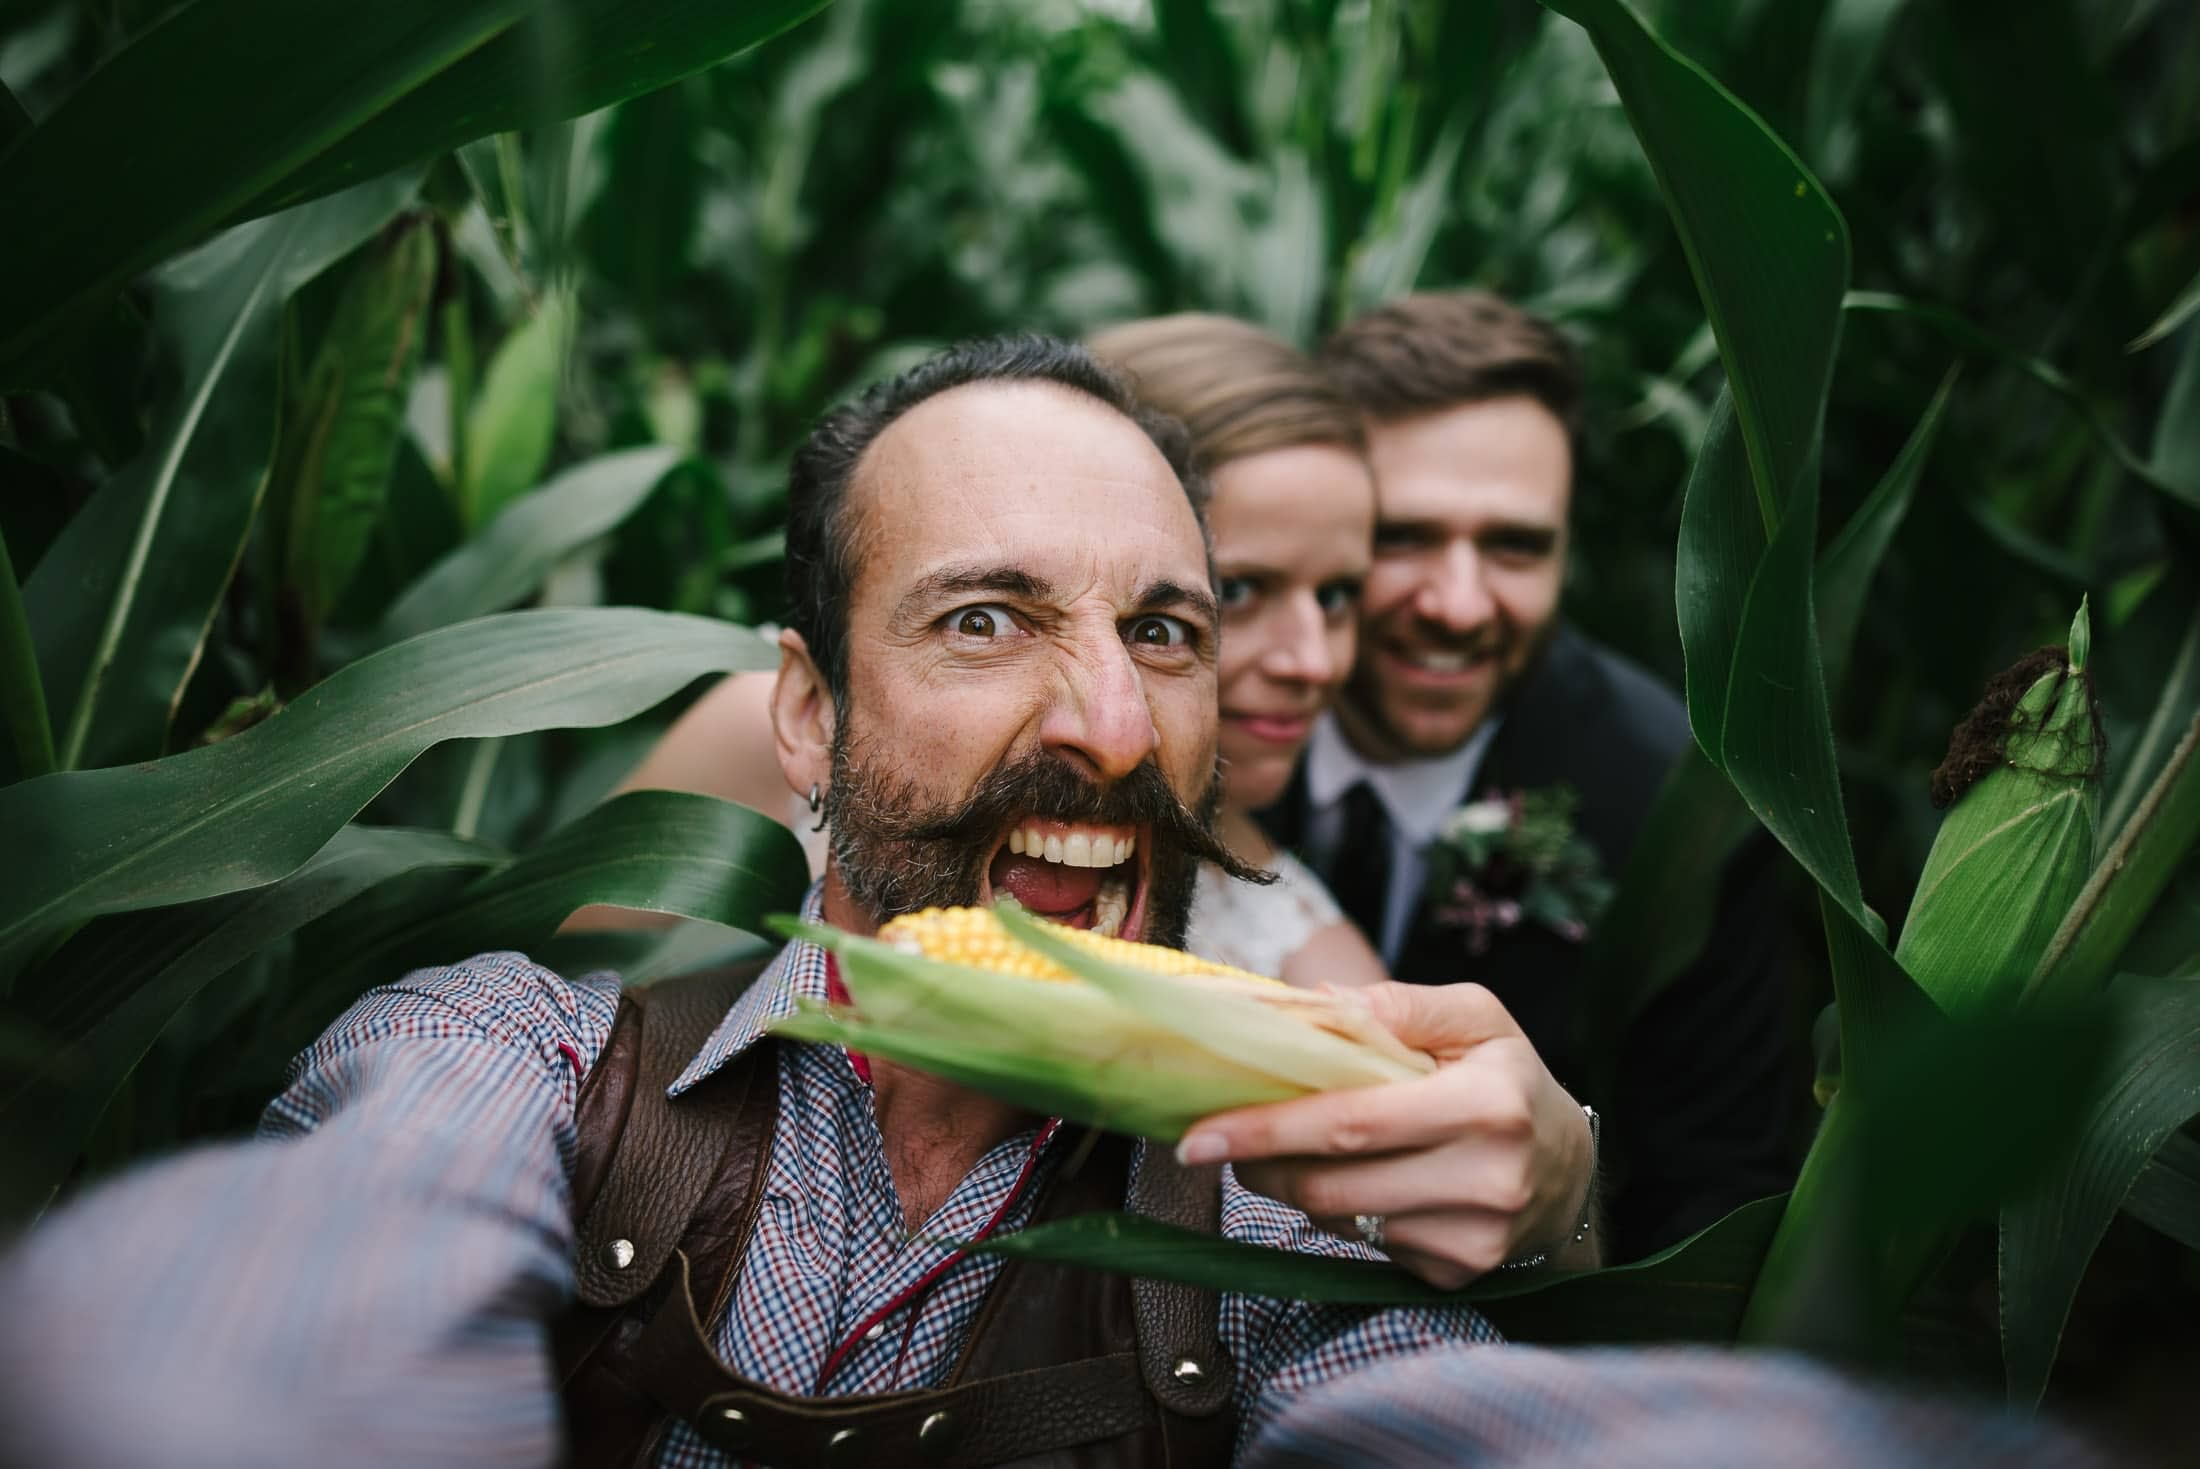 New York Wedding in corn field